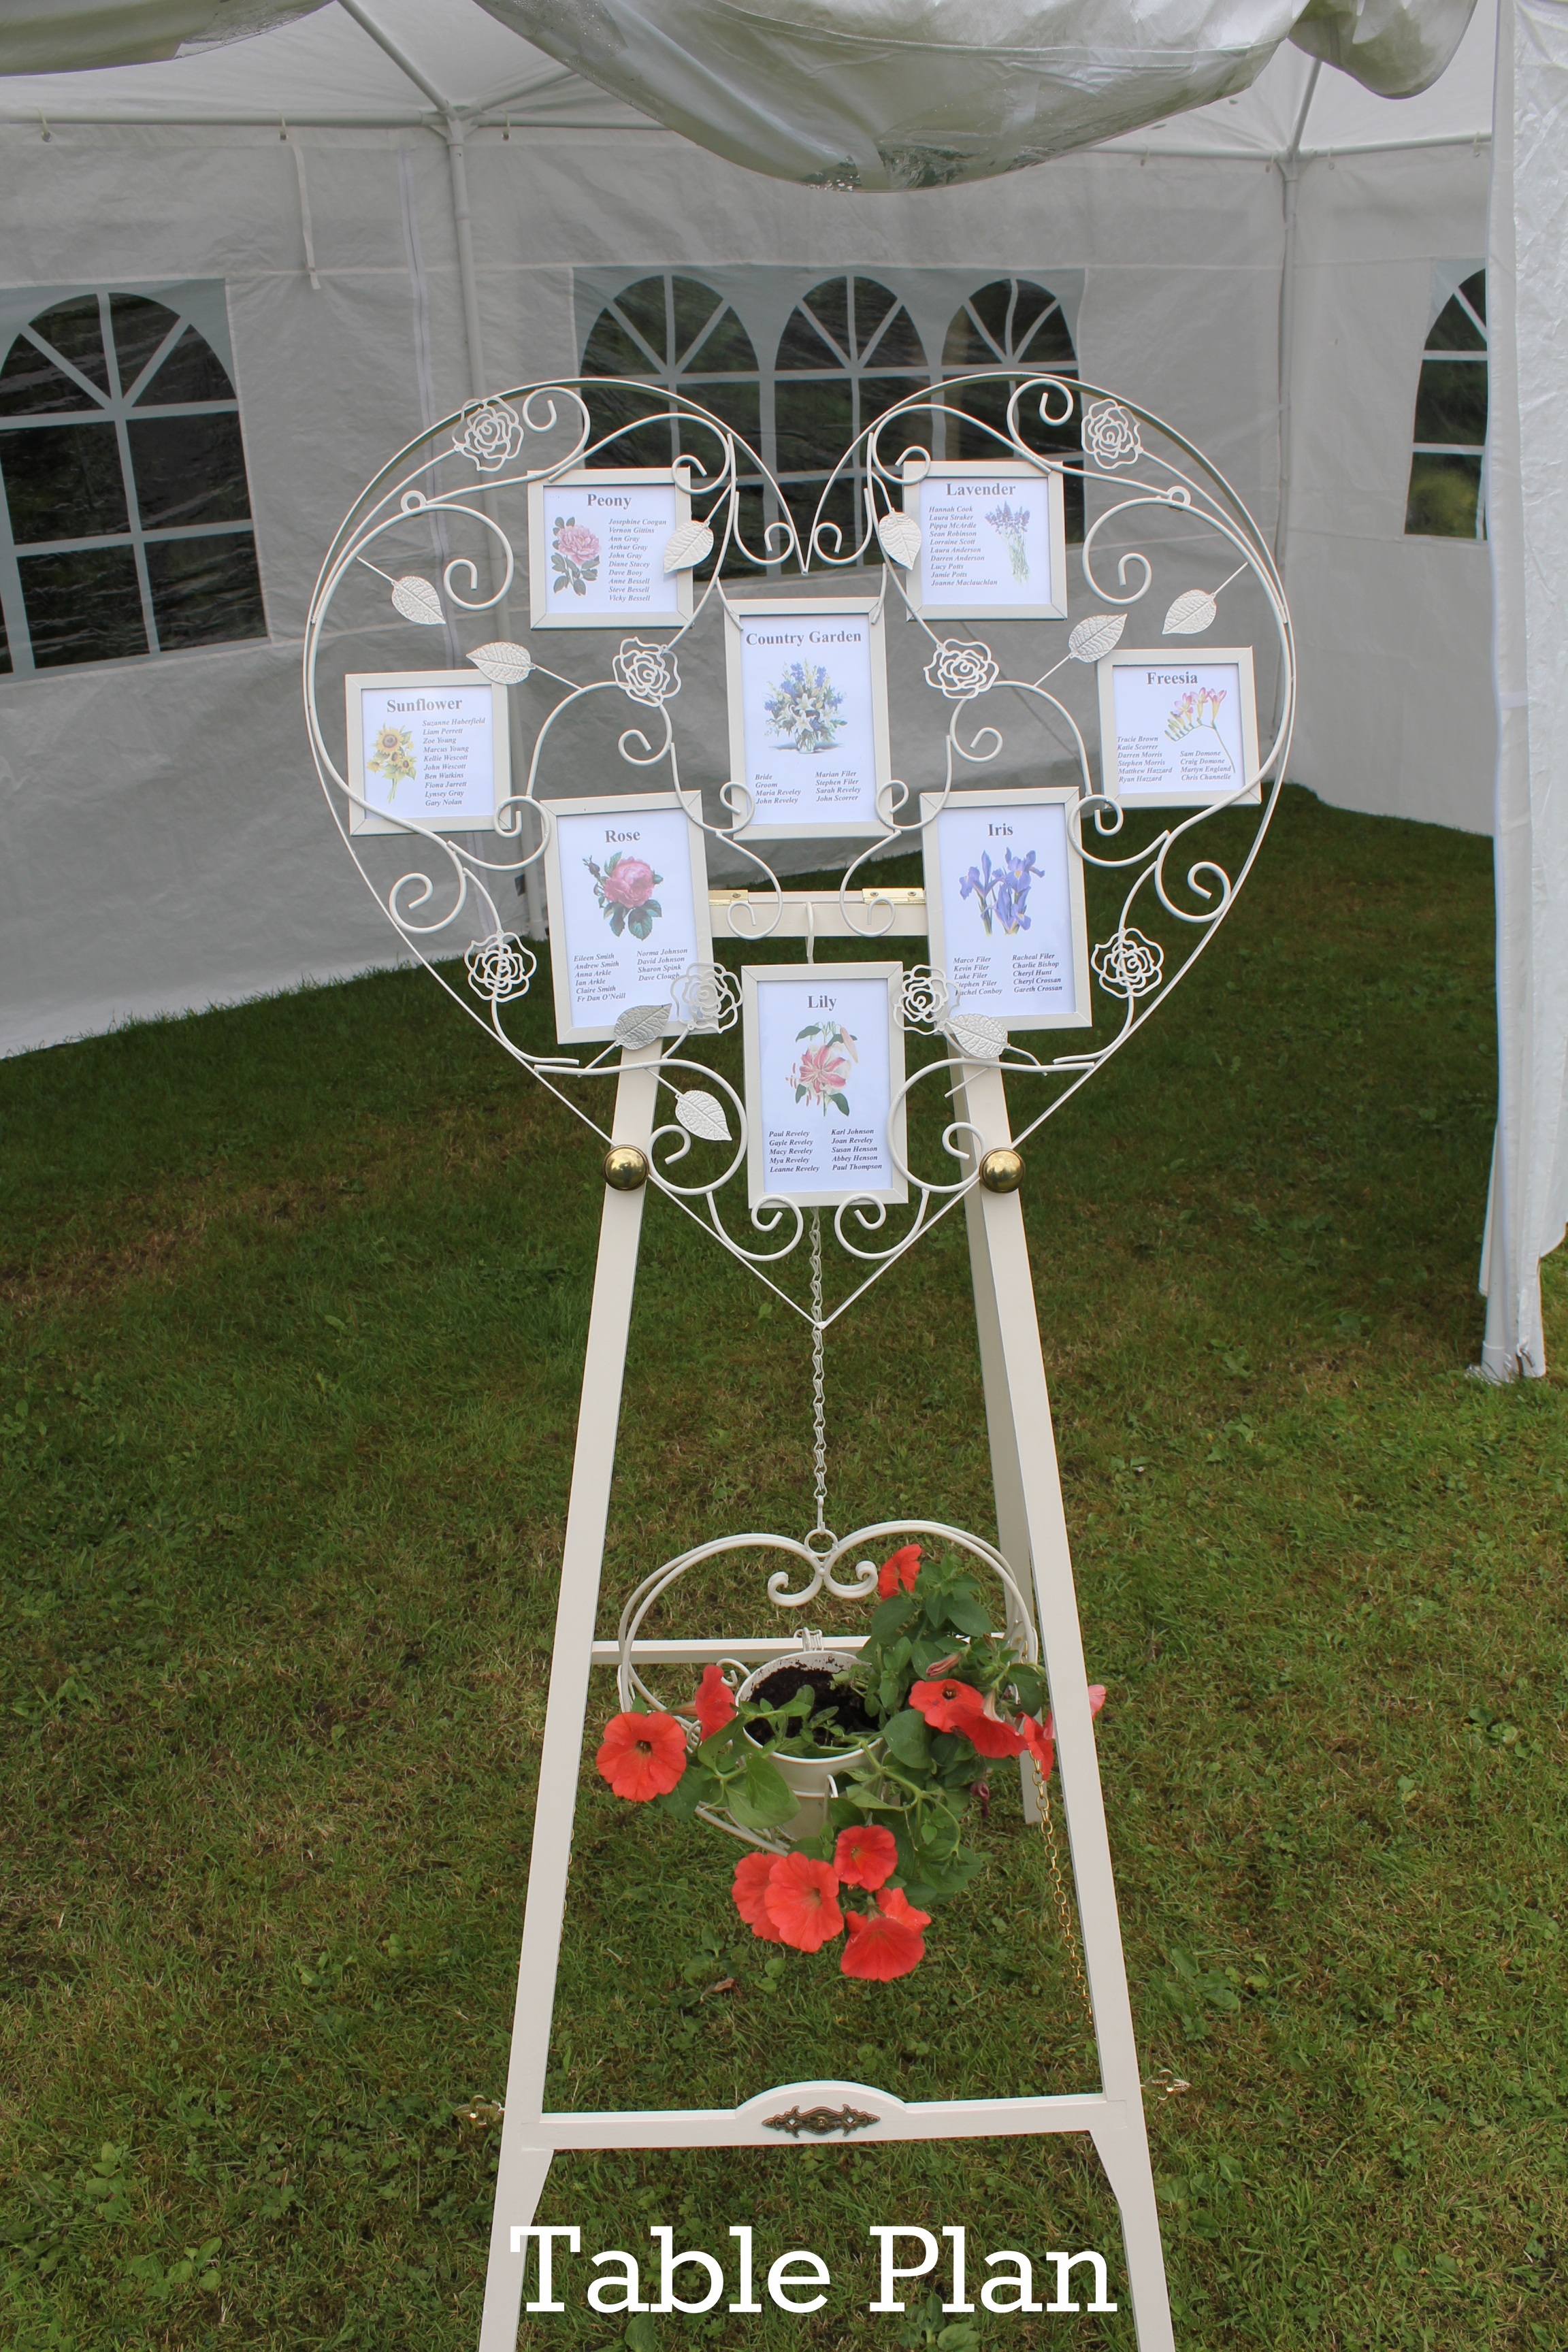 Table Plan stand